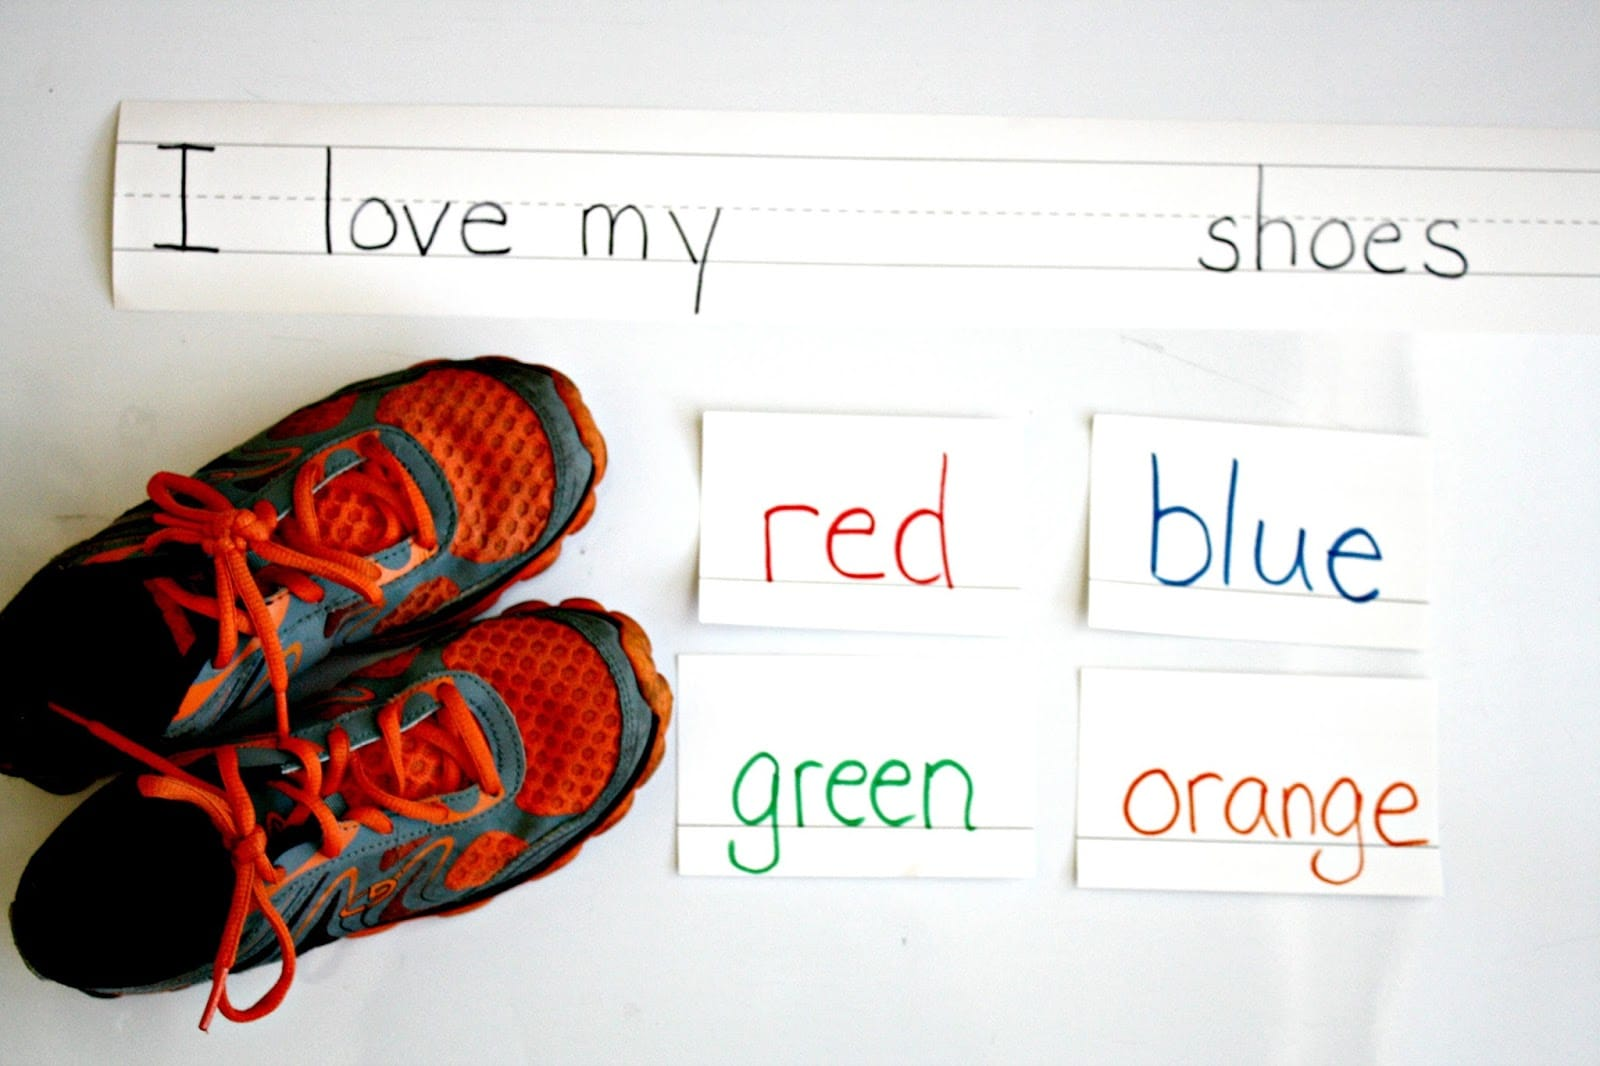 I love my ___ shoes, literacy activity for Pete the Cat